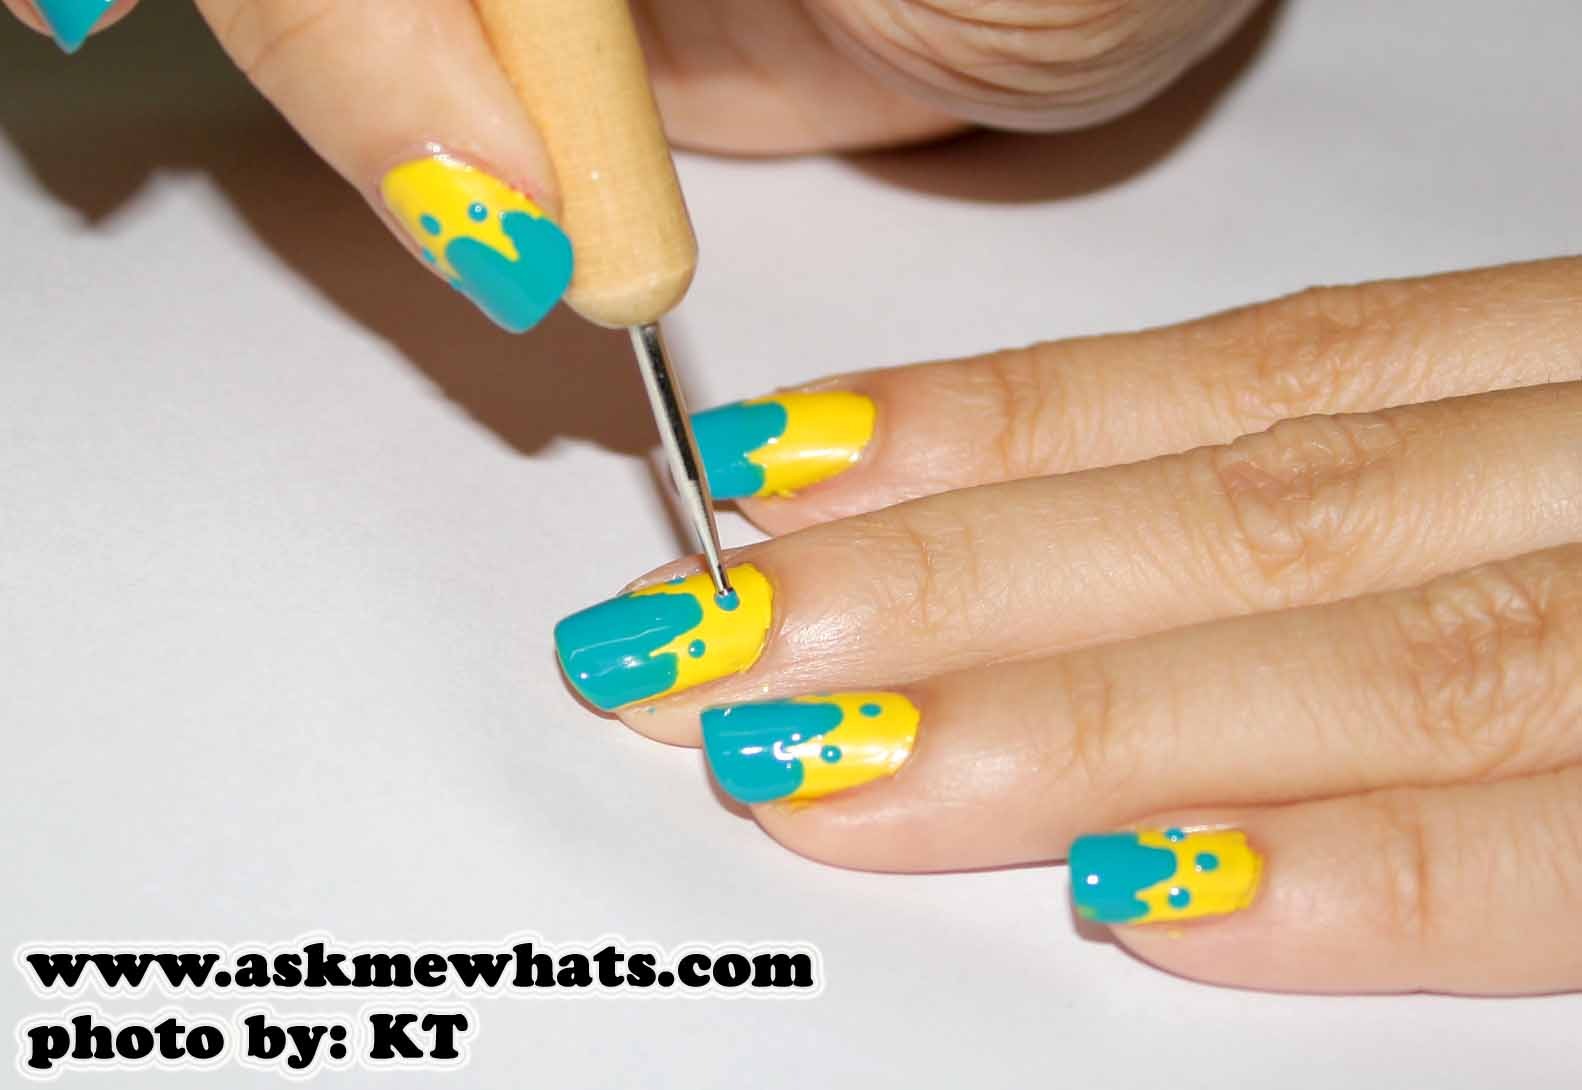 Nail designs using toothpicks toothpick nail art without tools using view images using a nail art dotting tool or toothpick prinsesfo Gallery